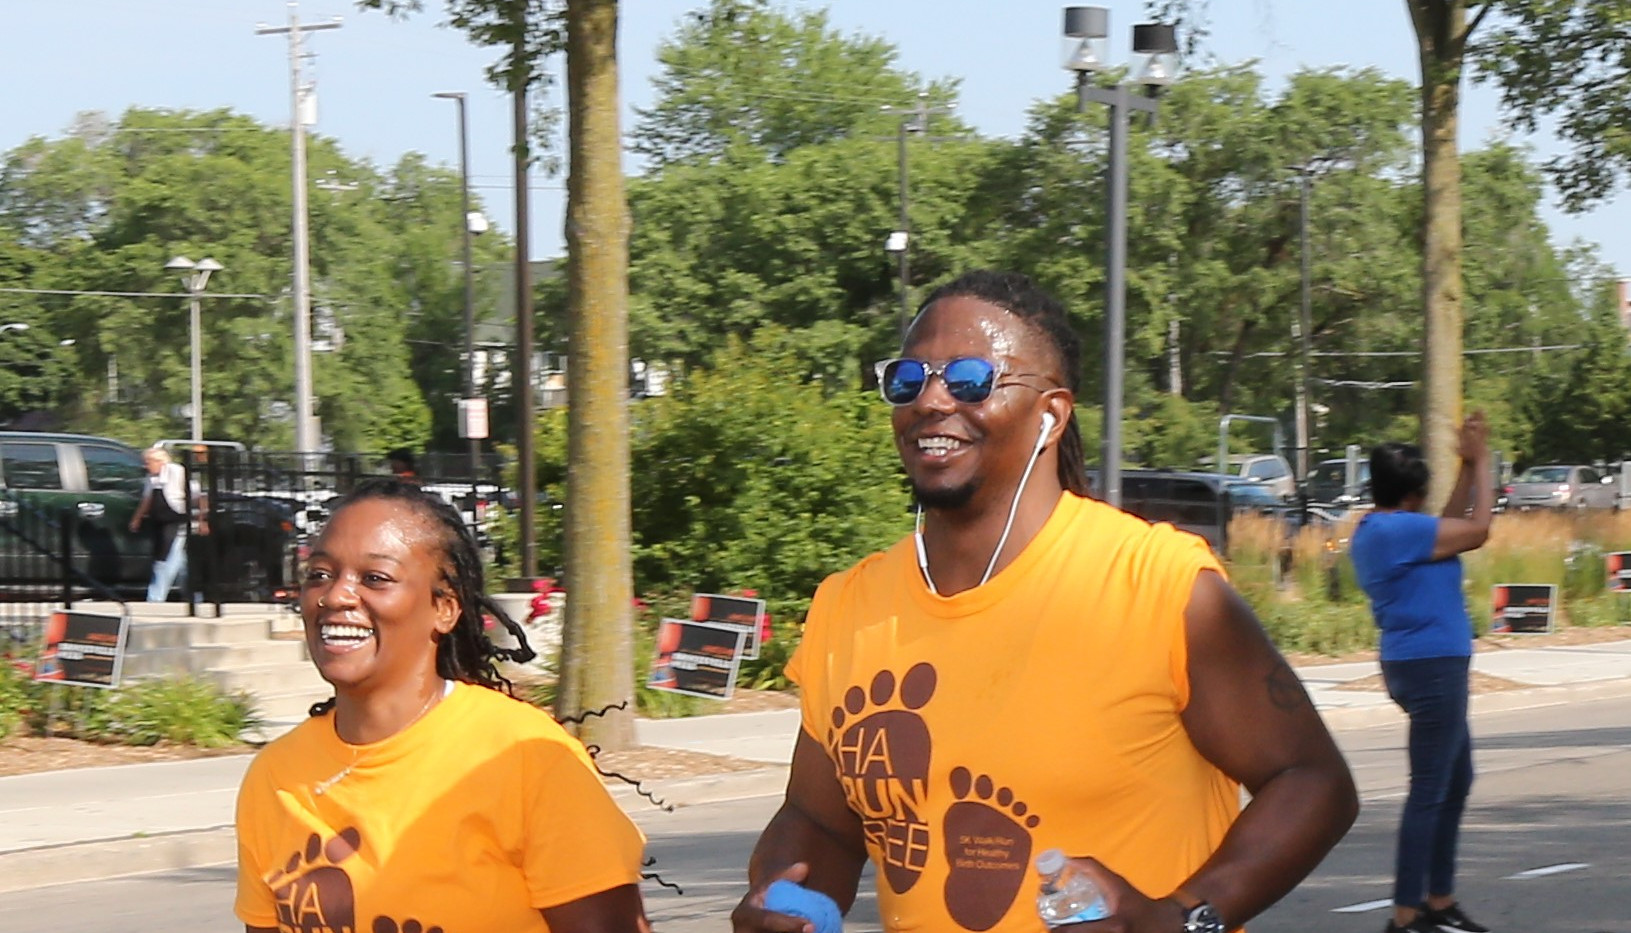 Bronzeville Week 2019-HaRUNbee Walk-Run